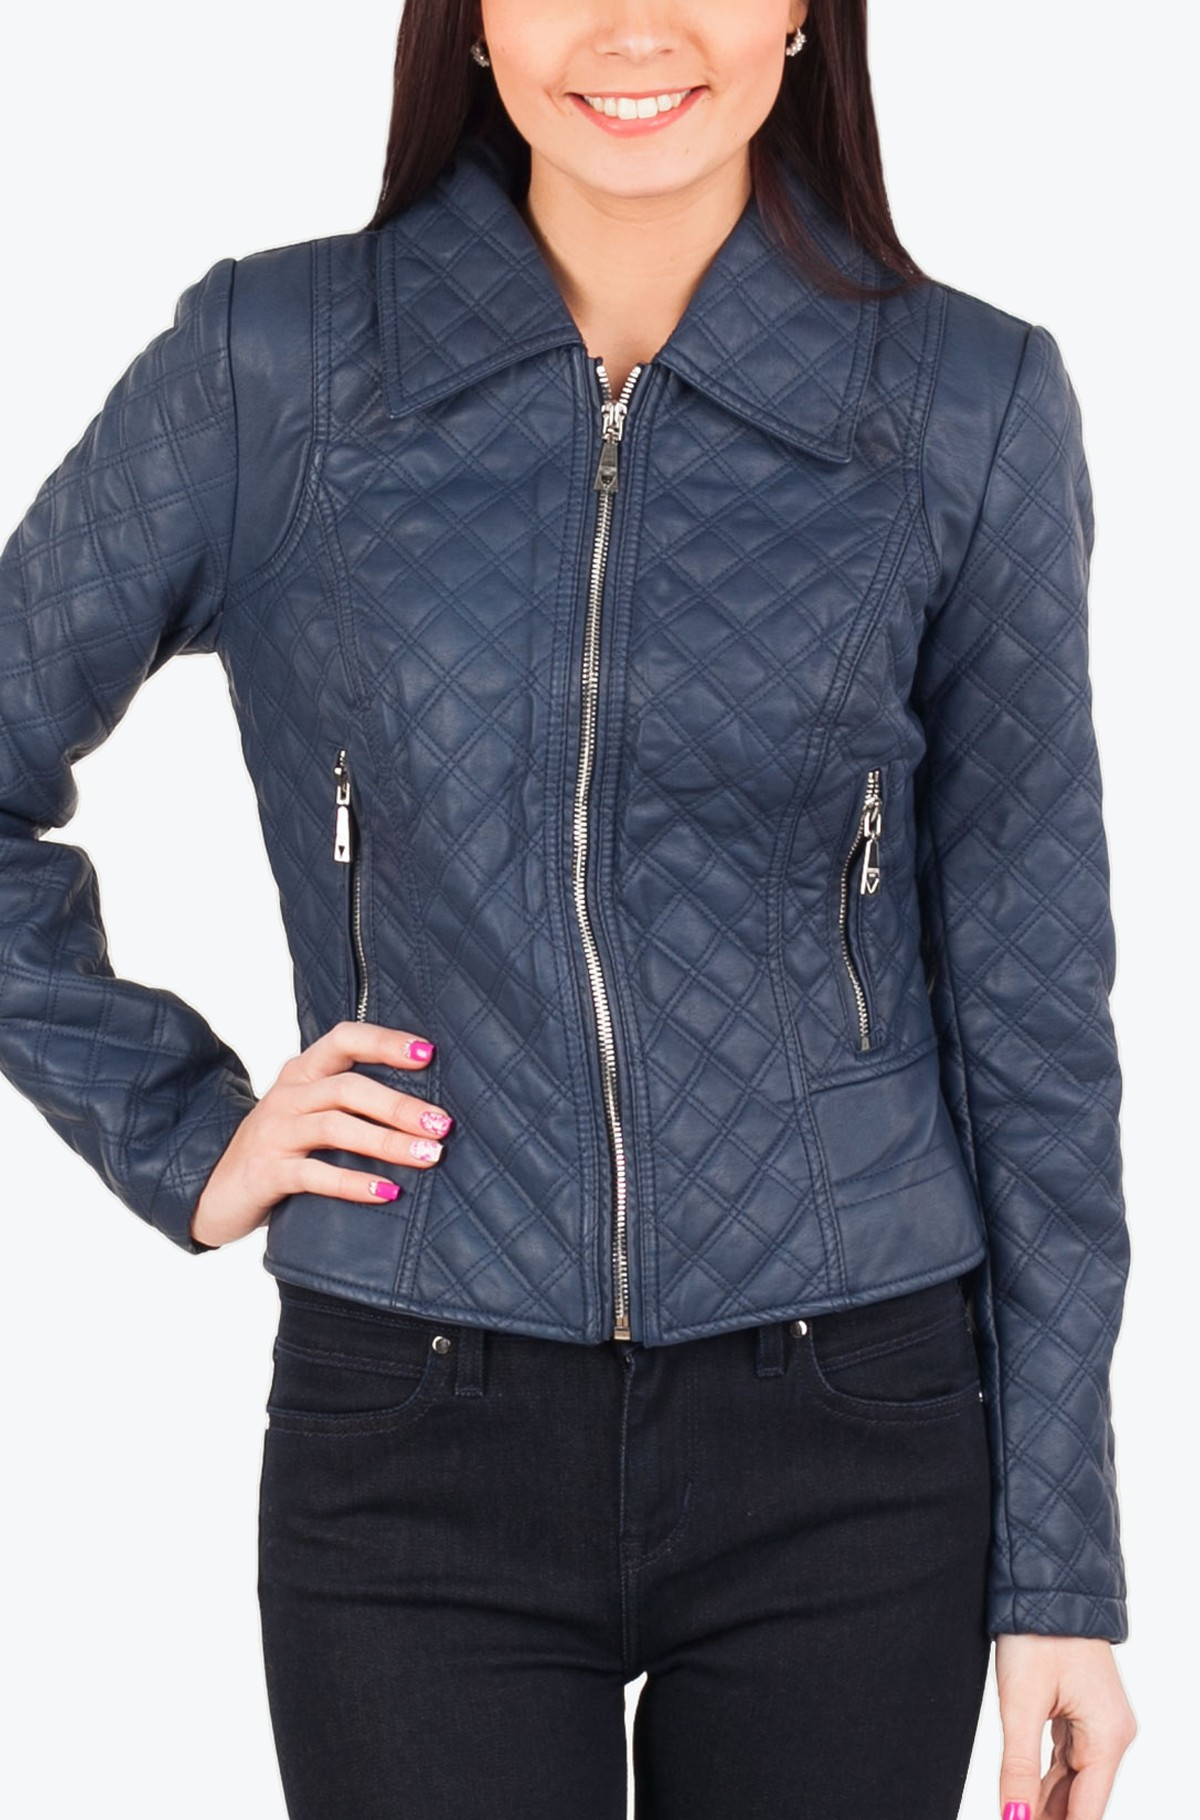 Leather jacket W54L25-full-1